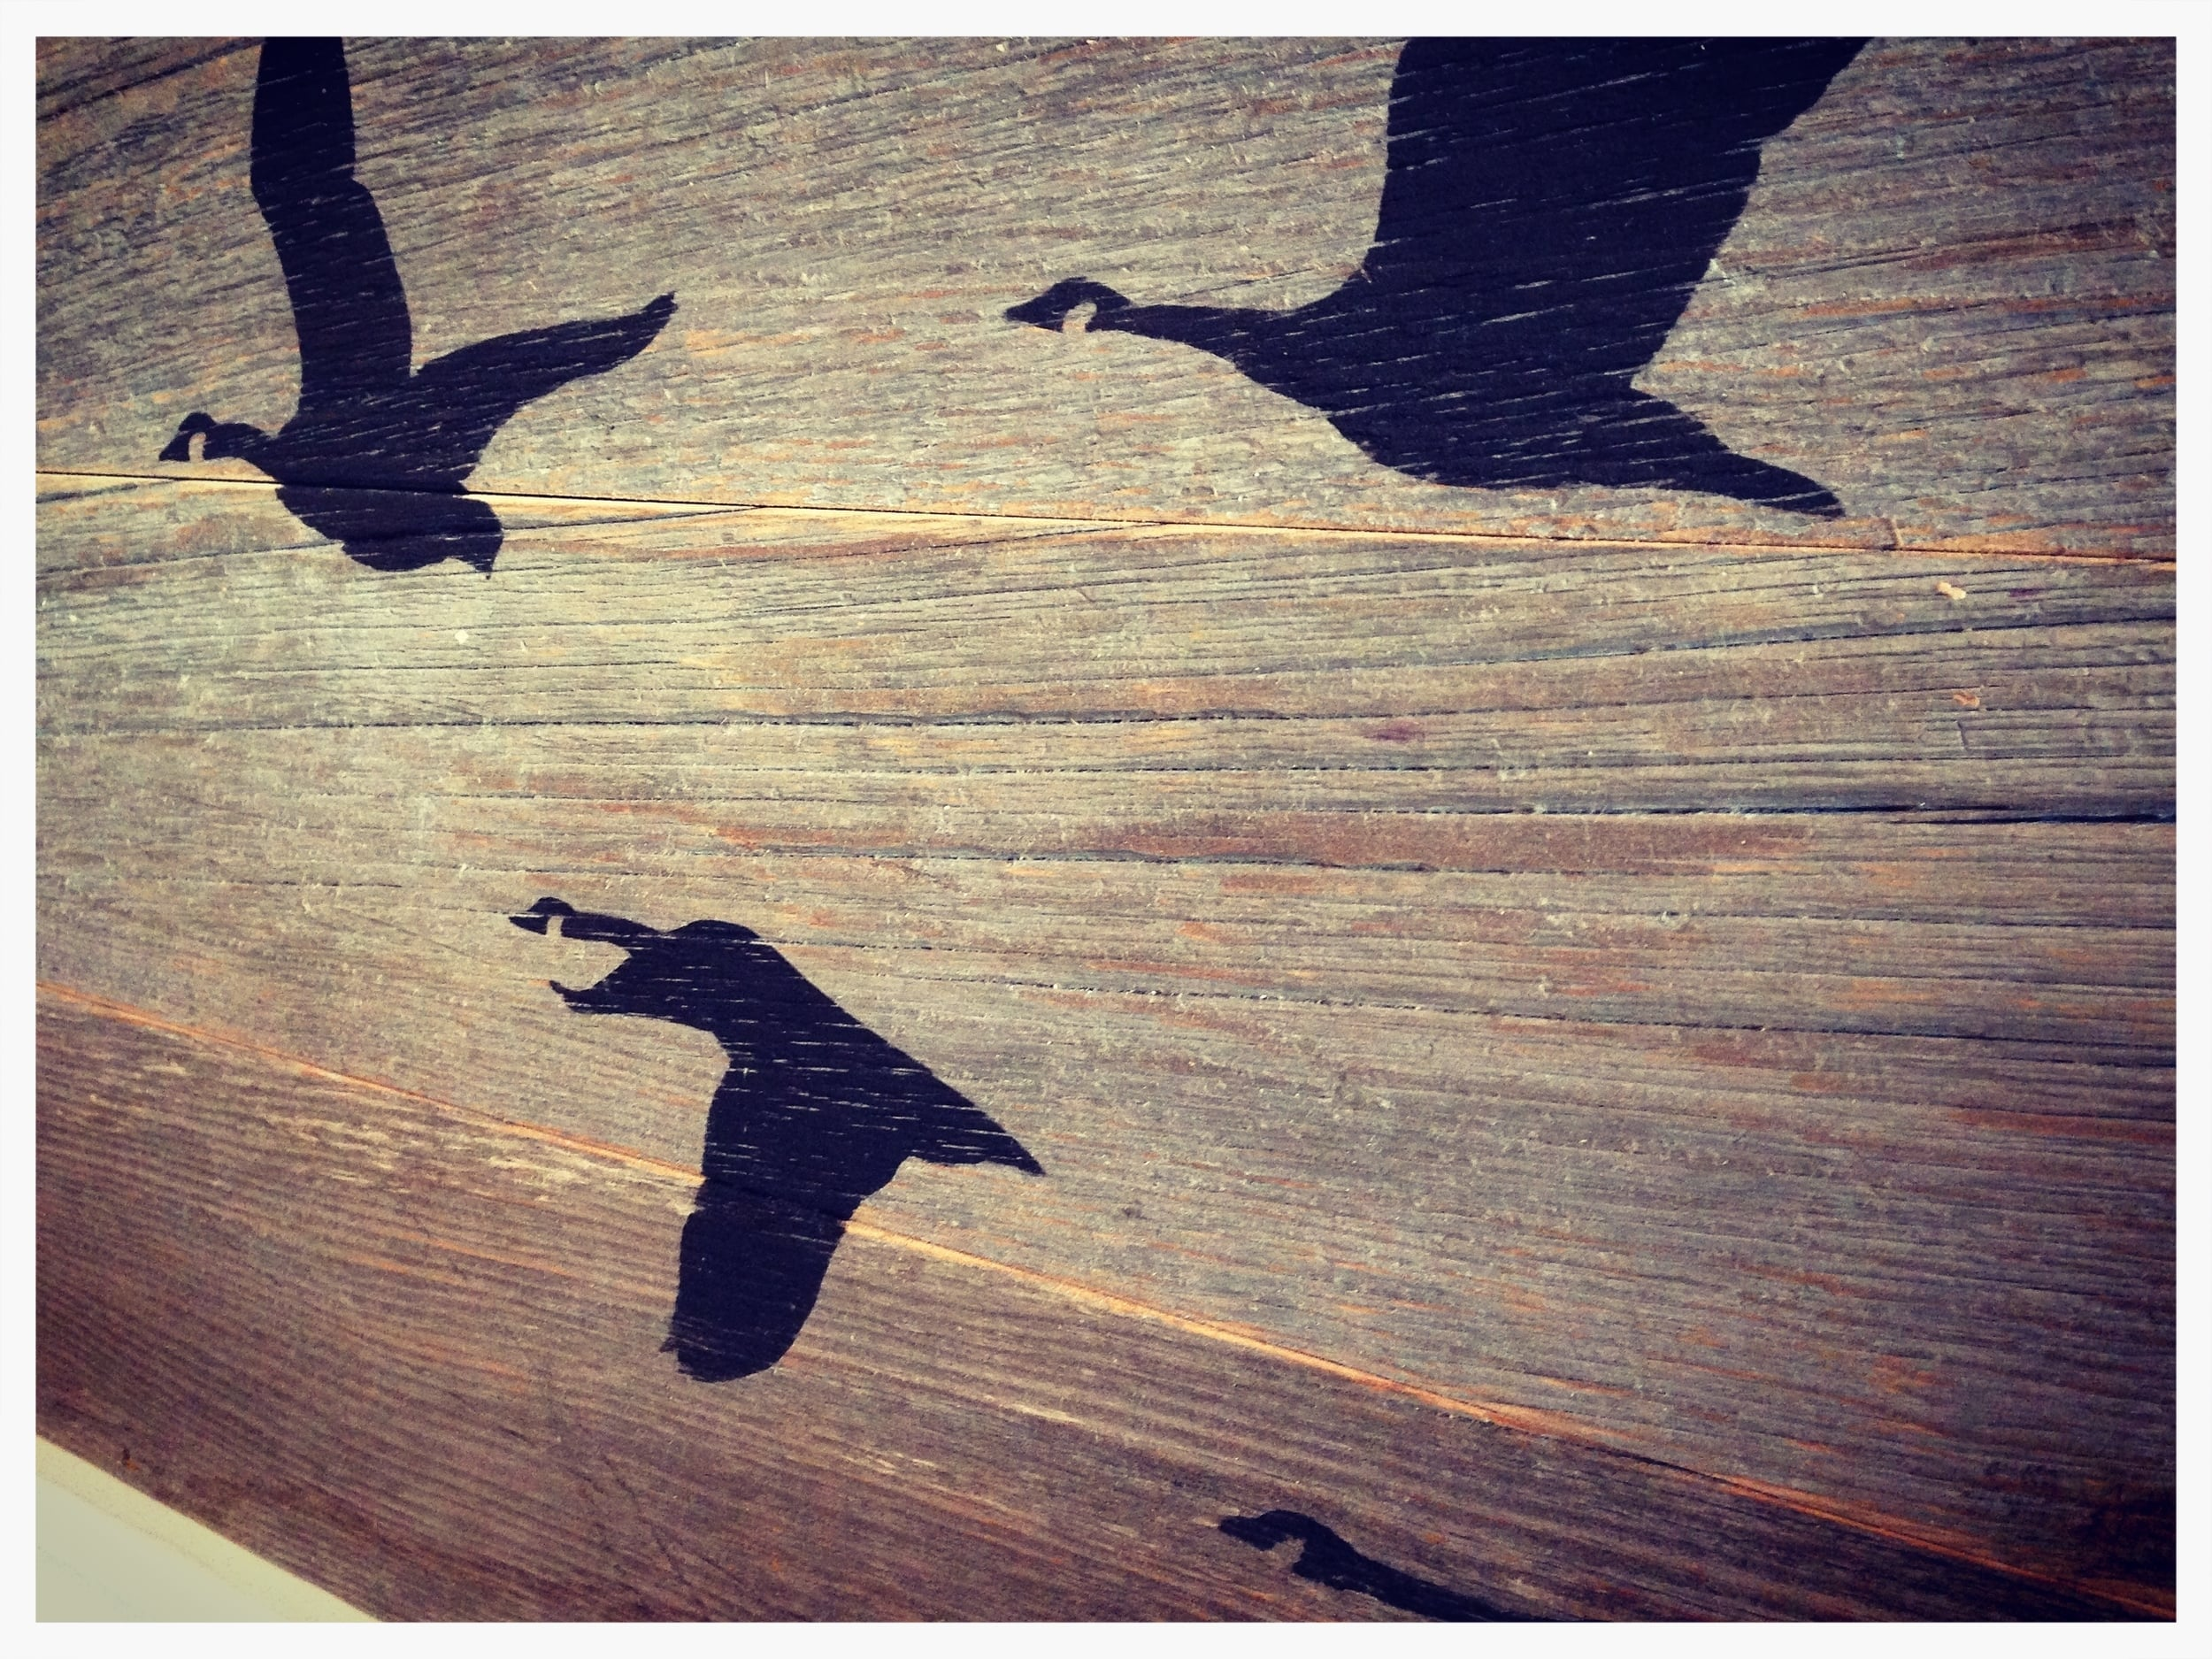 Canada Geese, 2015